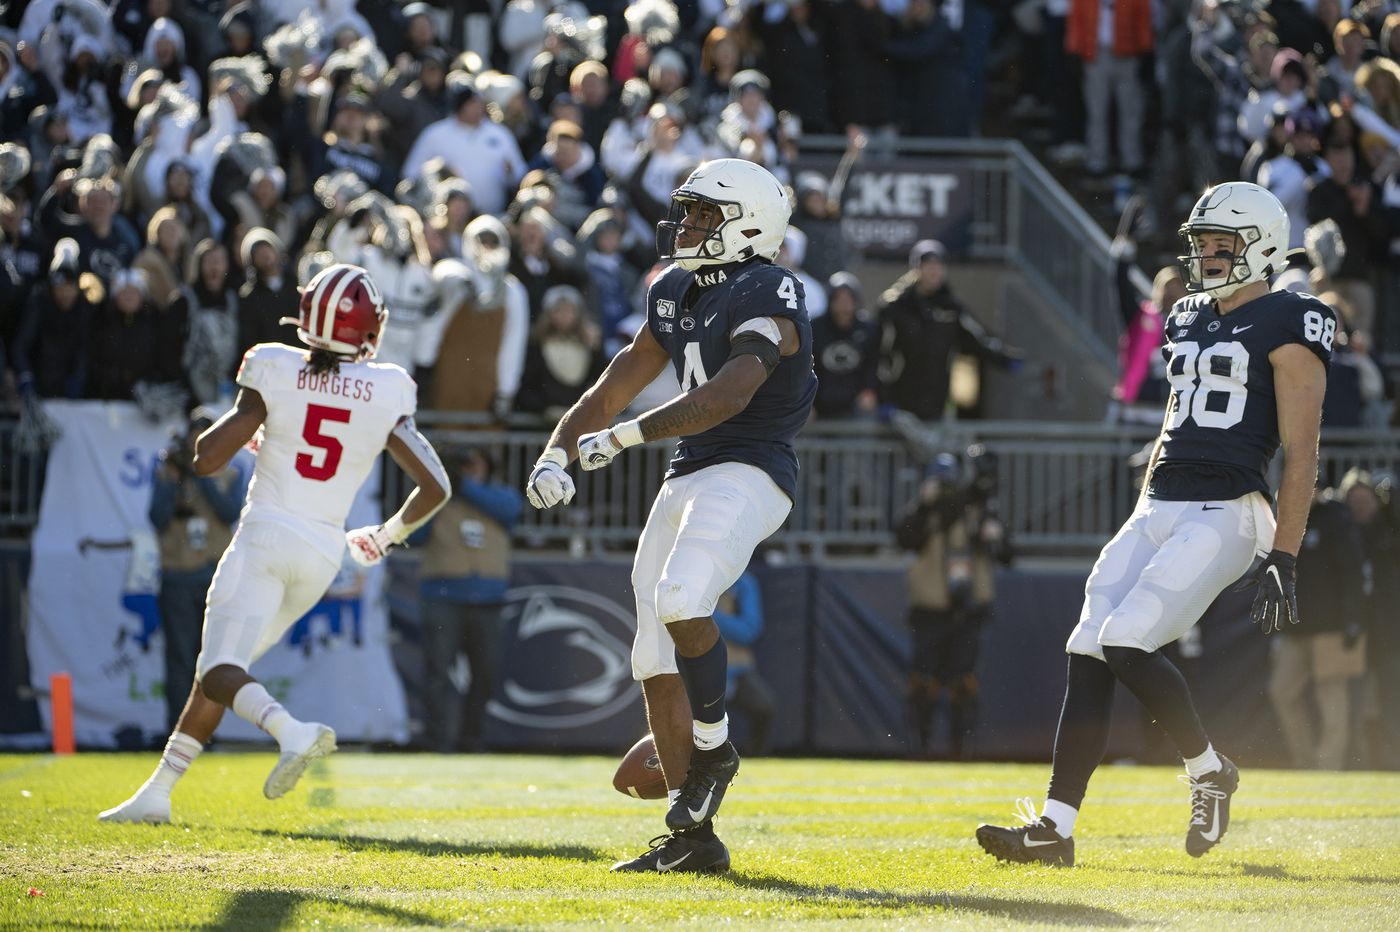 Minus KJ Hamler, Penn State ices win over Indiana with run-heavy, nine-minute touchdown drive